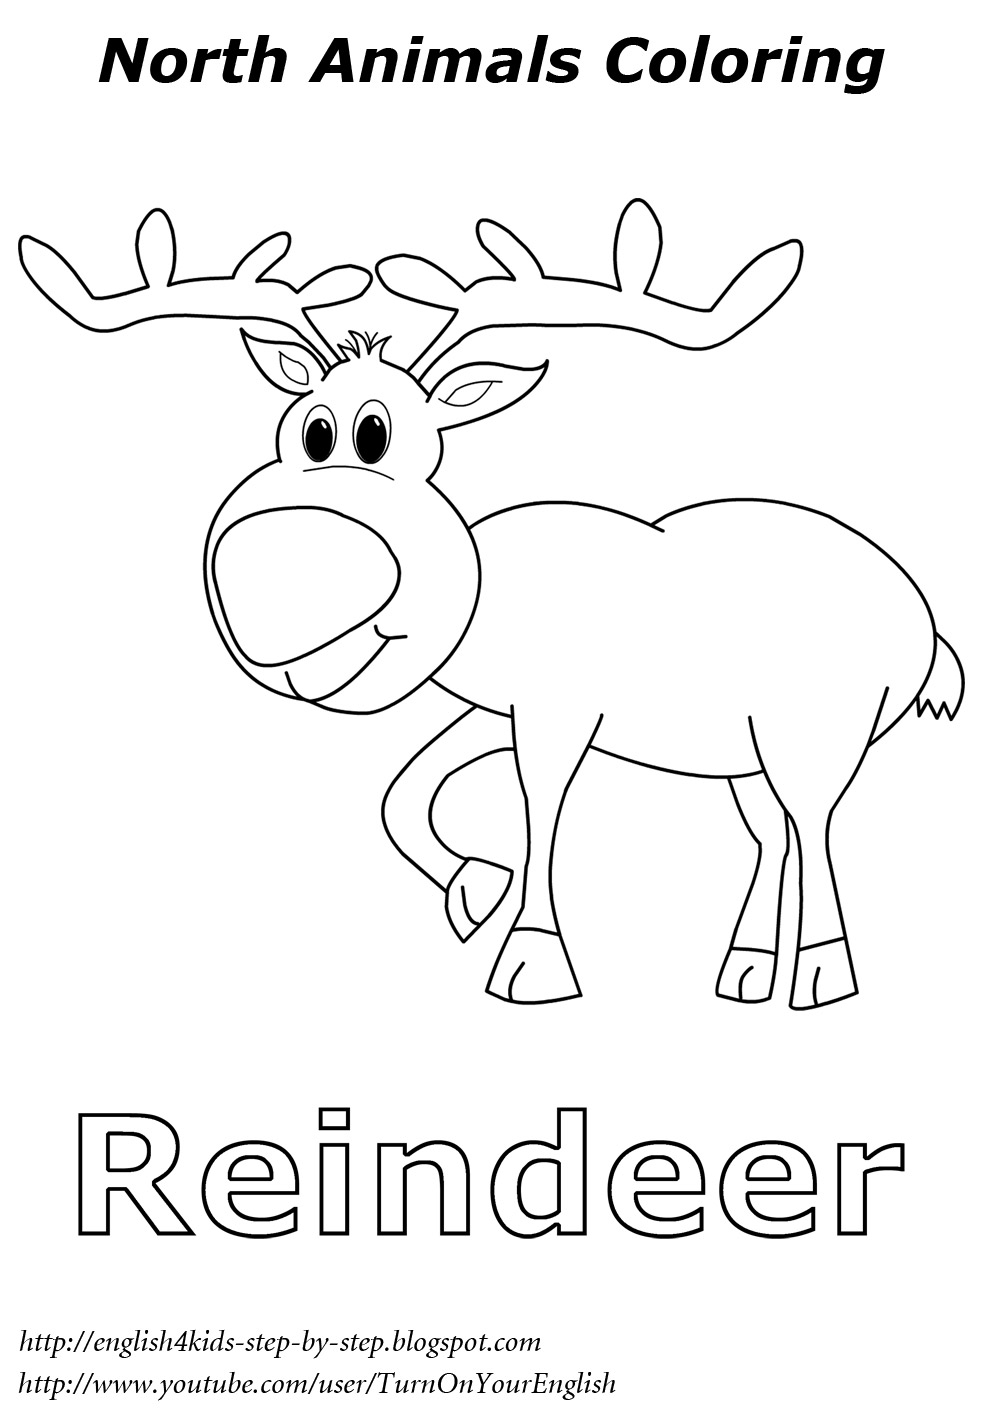 arctic animals coloring pages polar arctic animals coloring pages Állatok rajz coloring animals arctic pages